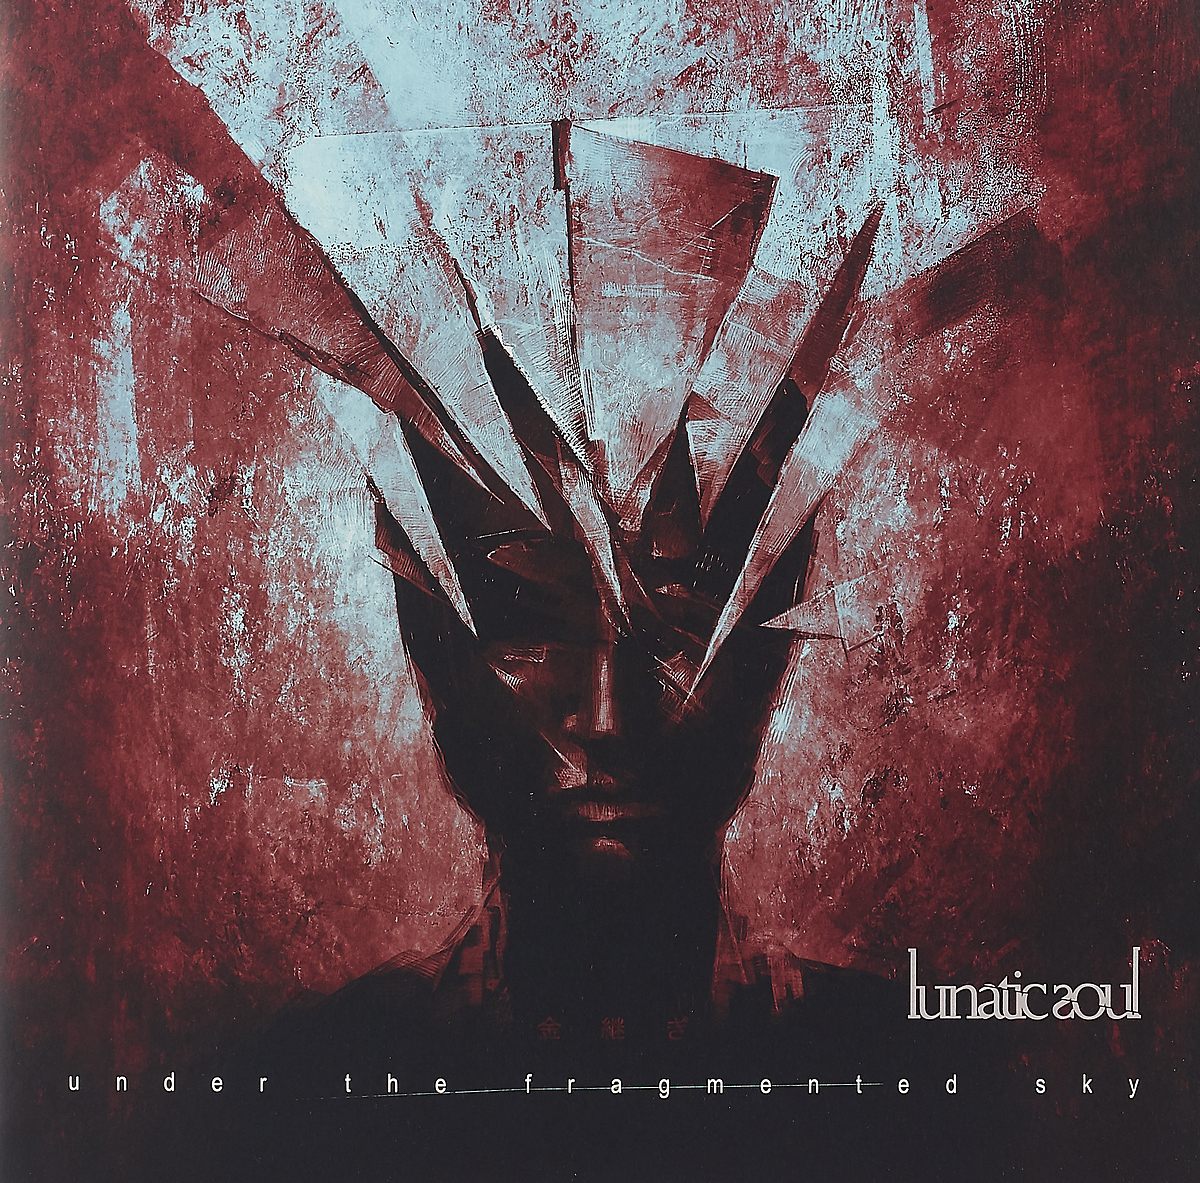 Lunatic Soul Lunatic Soul. Under The Fragmented Sky (LP) av to hdmi converter rca component analog audio video to hdmi adapter fhd 720p 1080p optional up scaller av2hdmi mt viki ah312